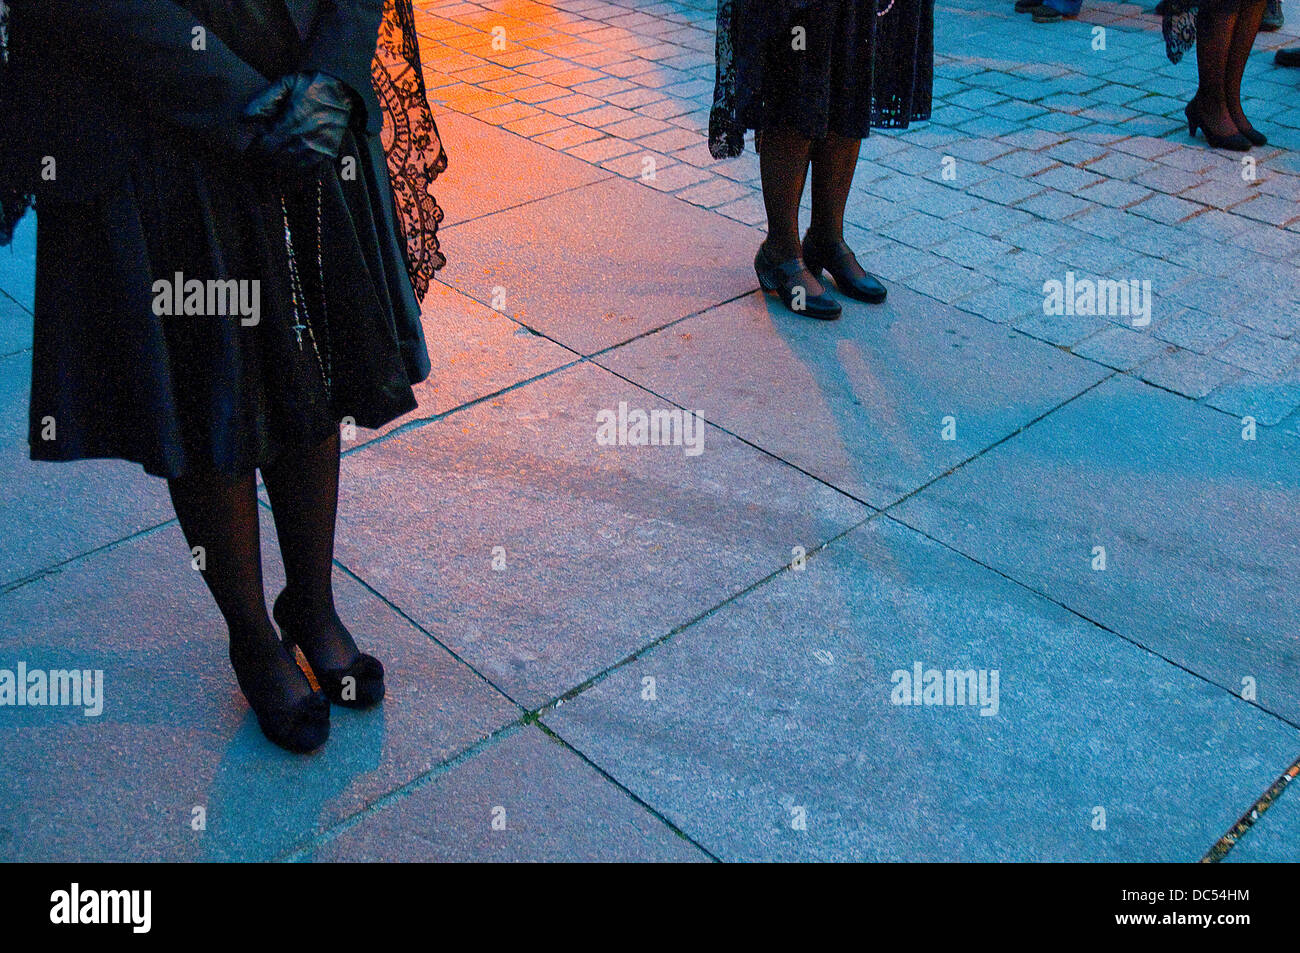 Women's legs during Holy Week procession. Madrid, Spain. Stock Photo